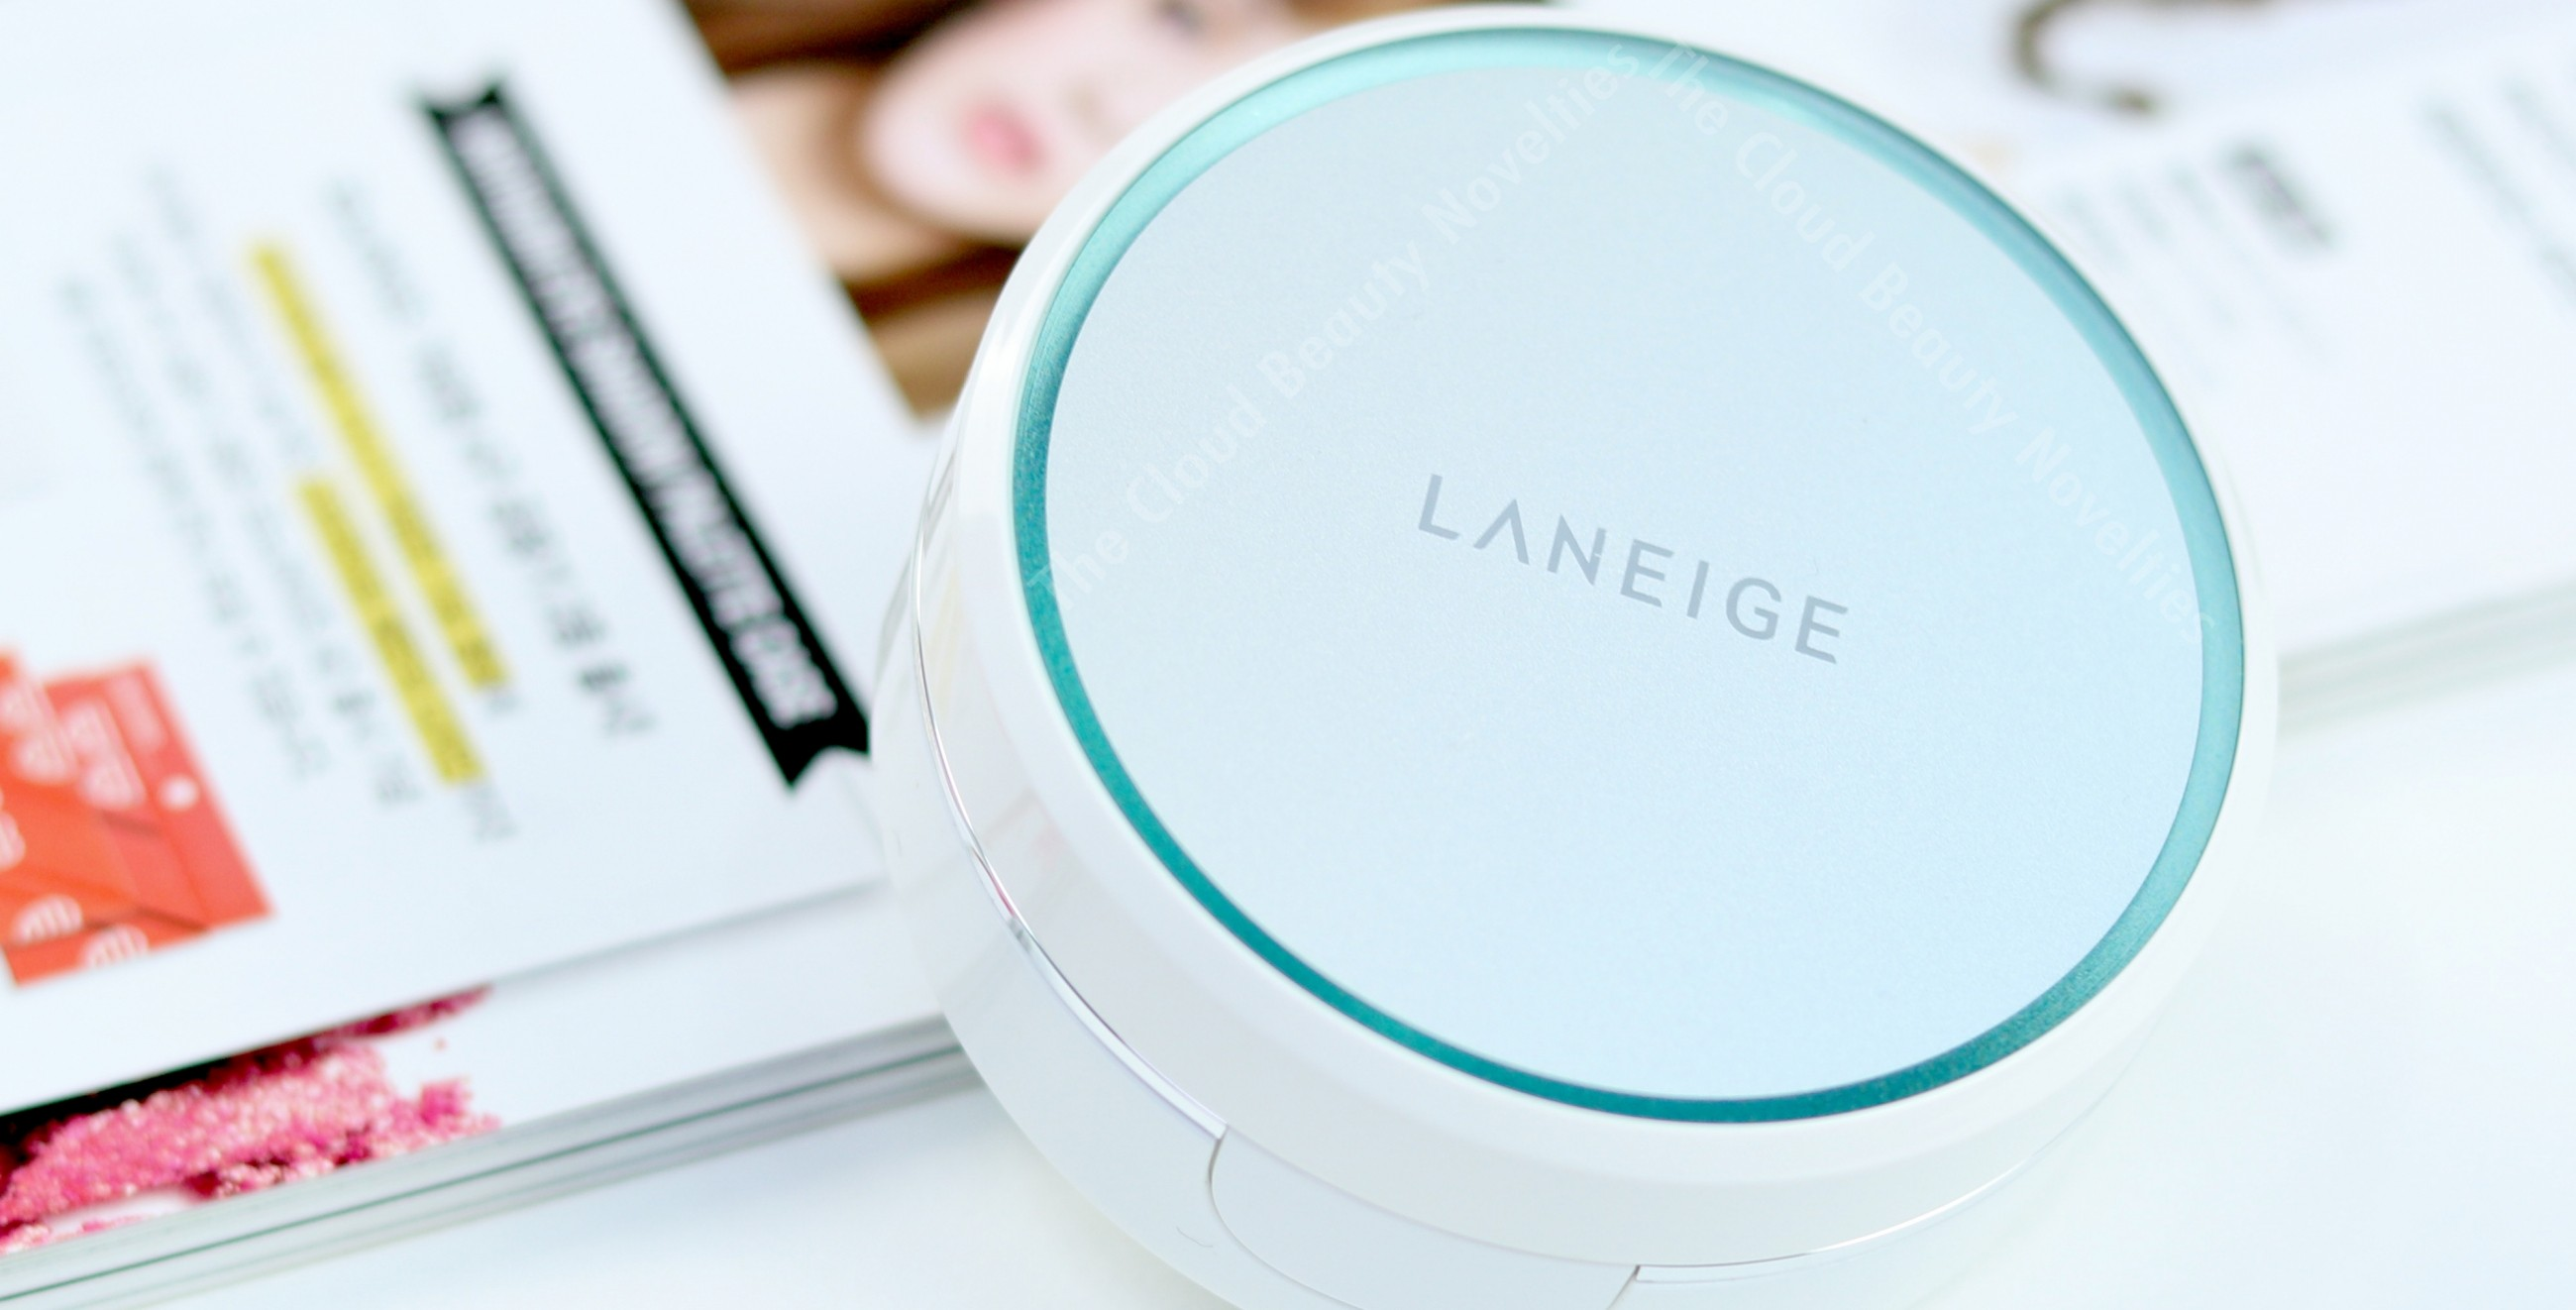 Laneige BB cushion Pore Control SPF 50+ PA+++